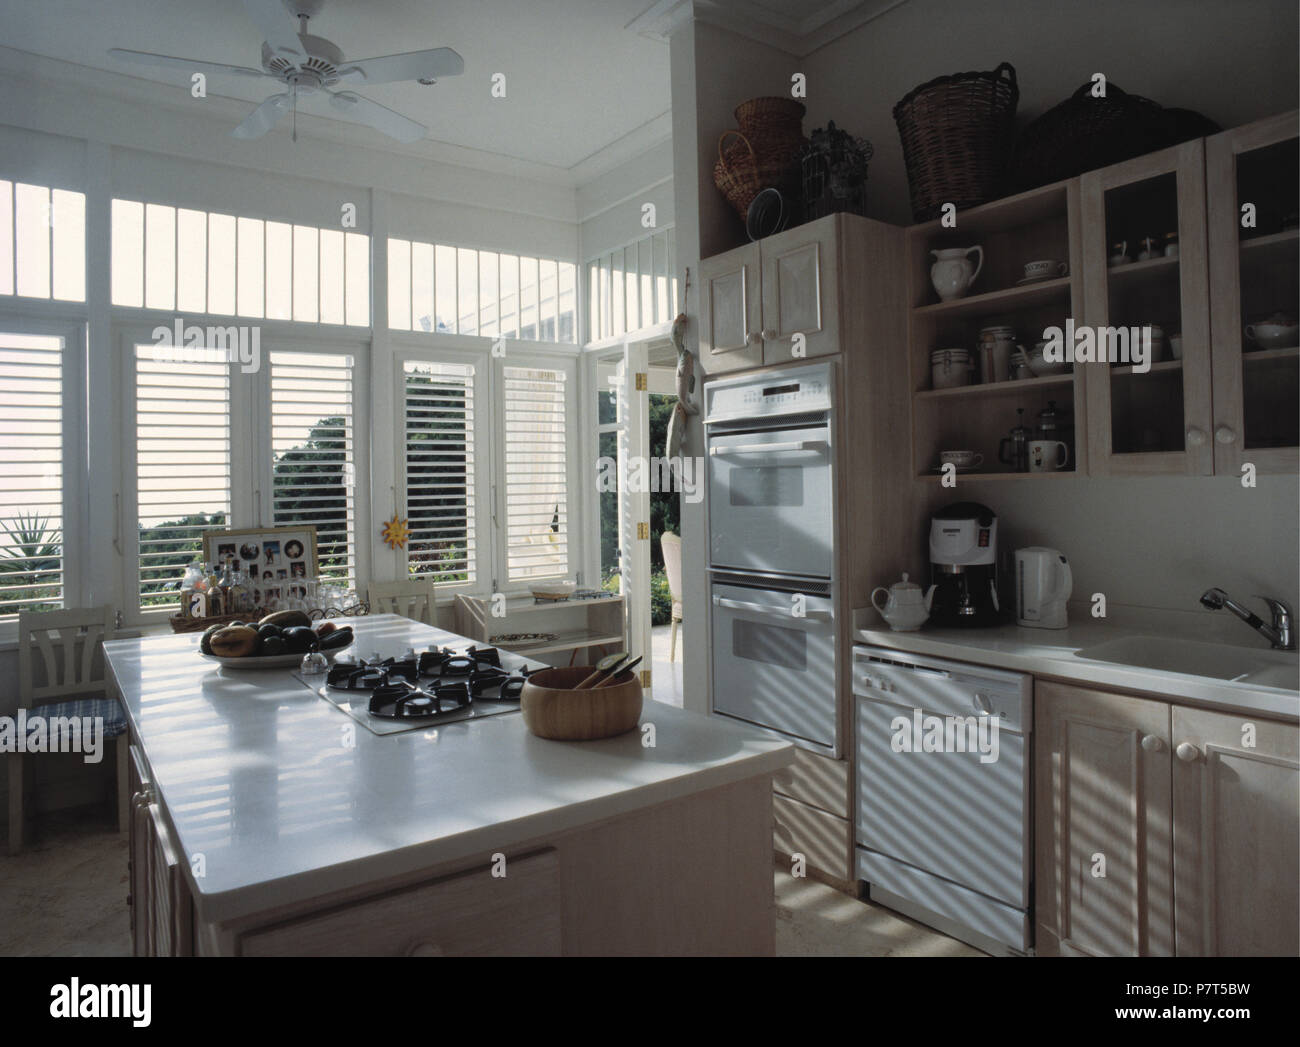 Hob In Island Unit In Caribbean Kitchen With White Slatted